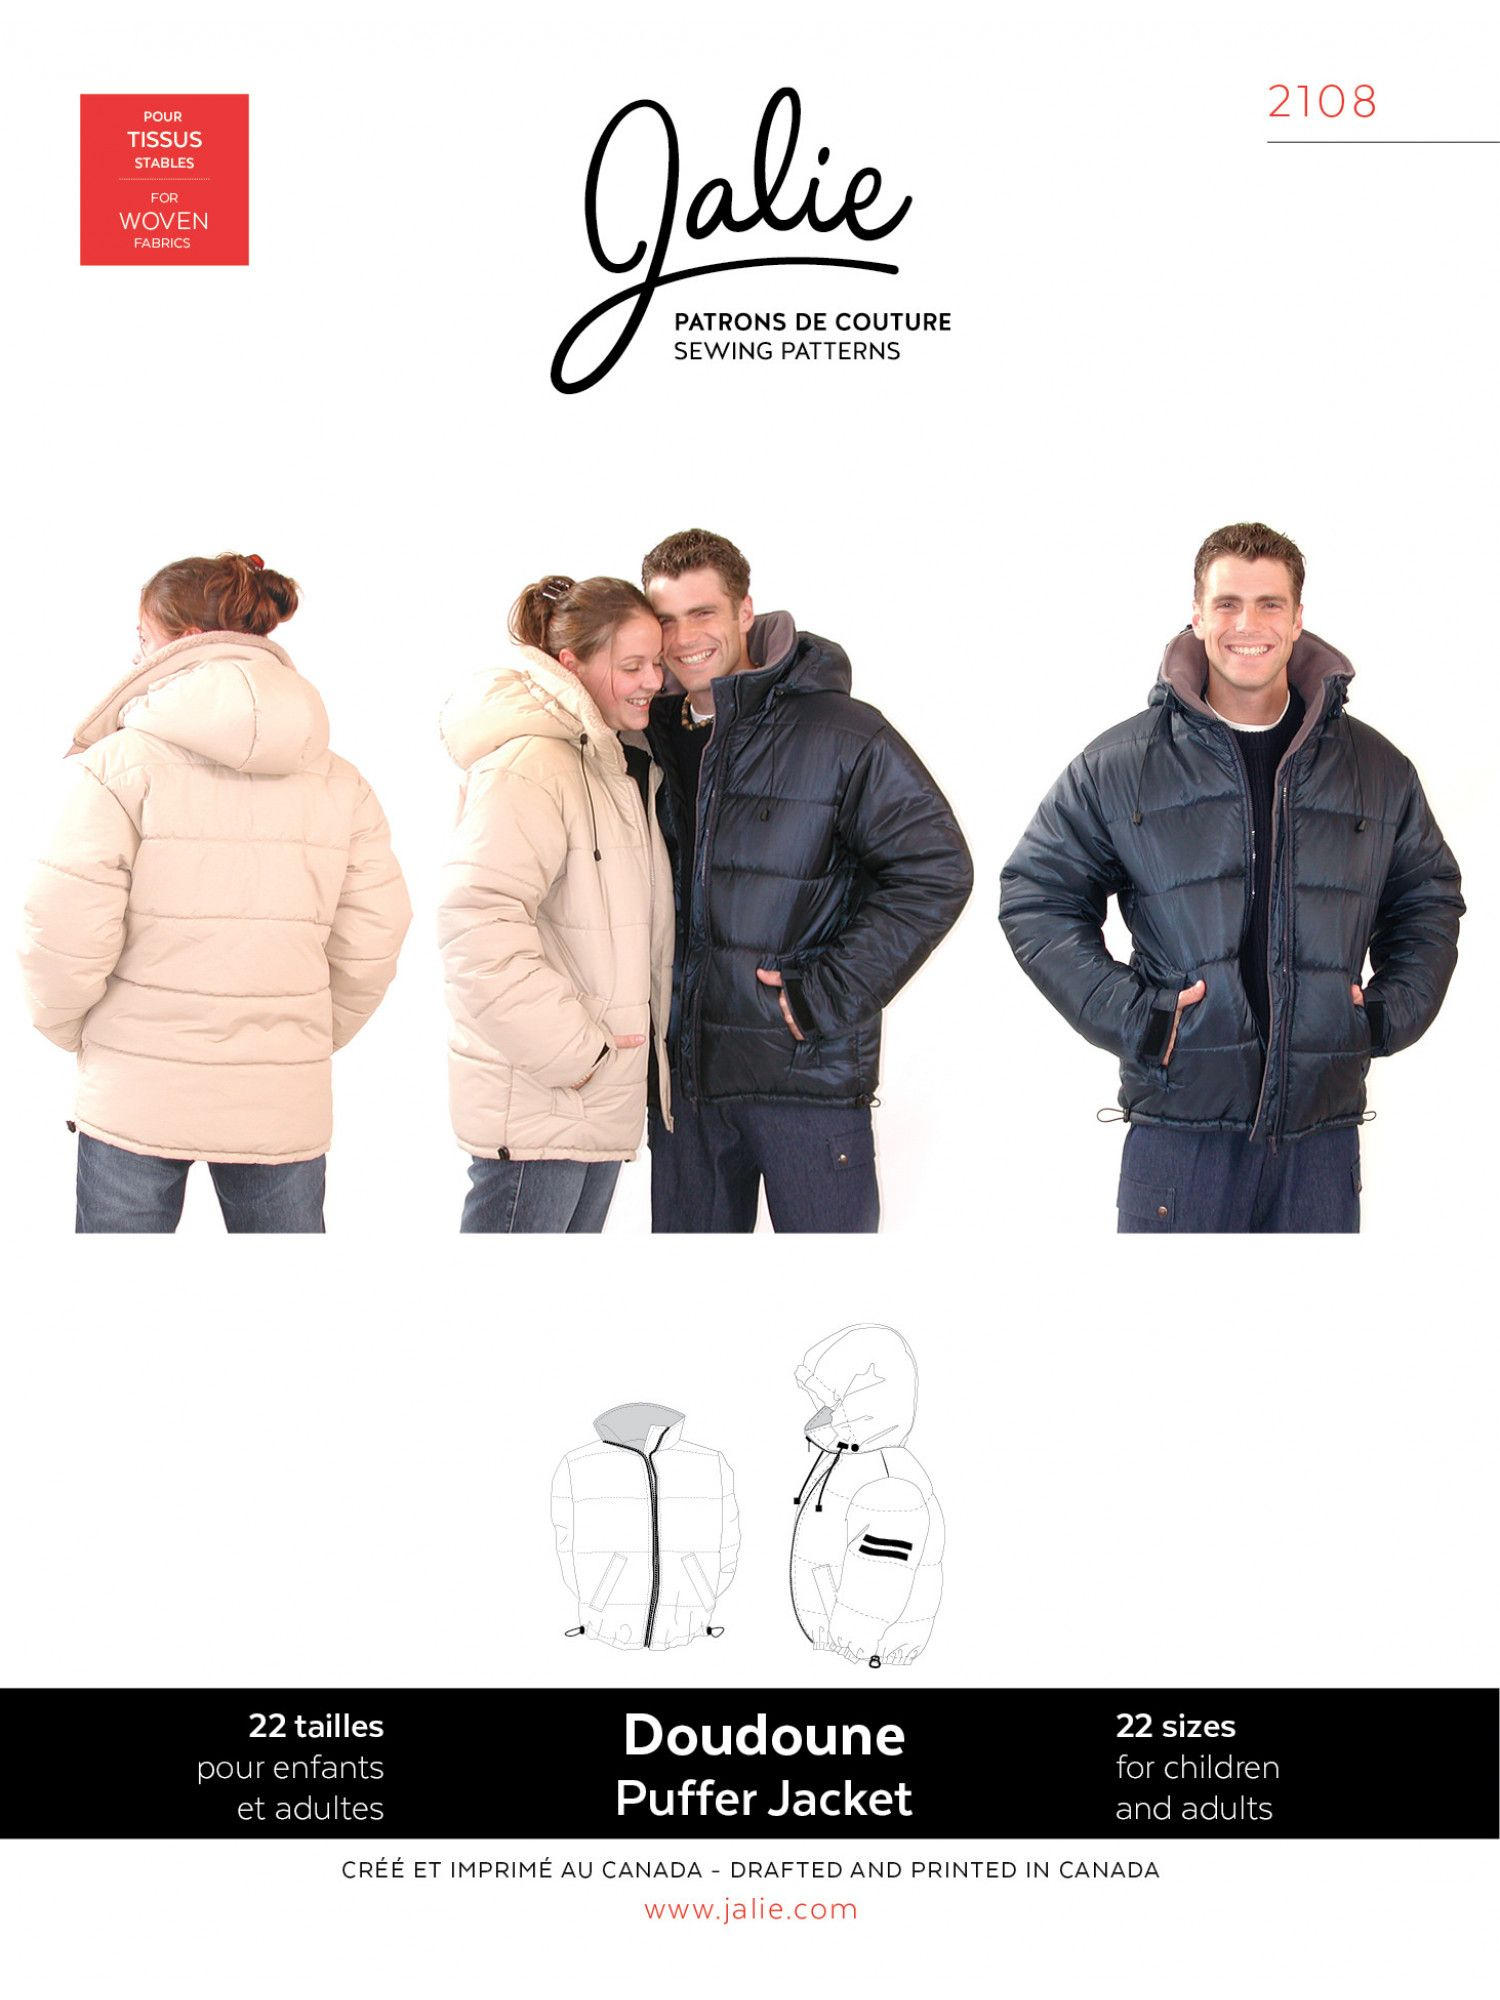 Doudoune jacket pattern patron de couture and patterns doudoune jeuxipadfo Gallery